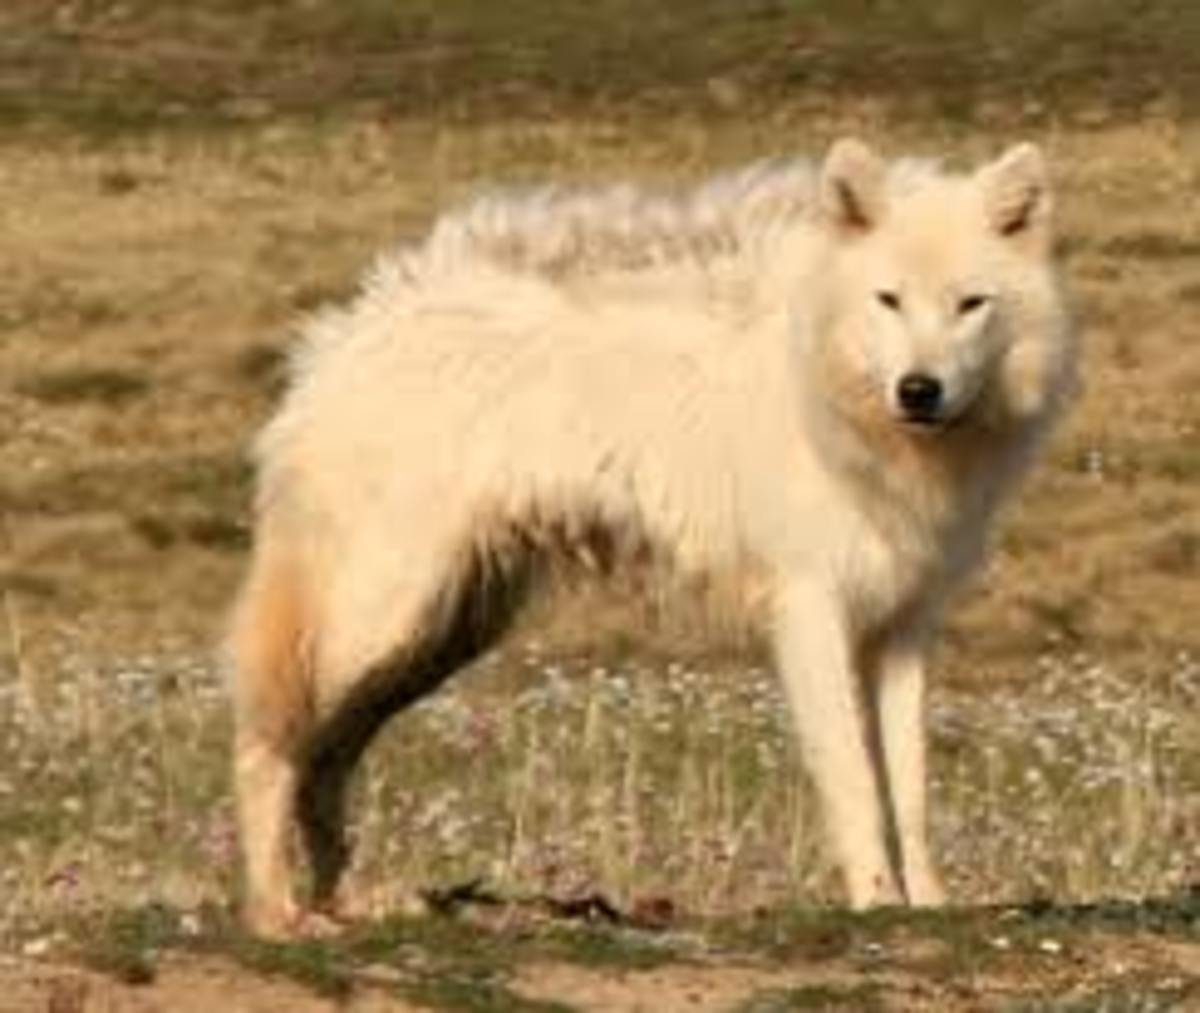 What Bernard's Wolf approximately looked like. This is not a confirmed photo.